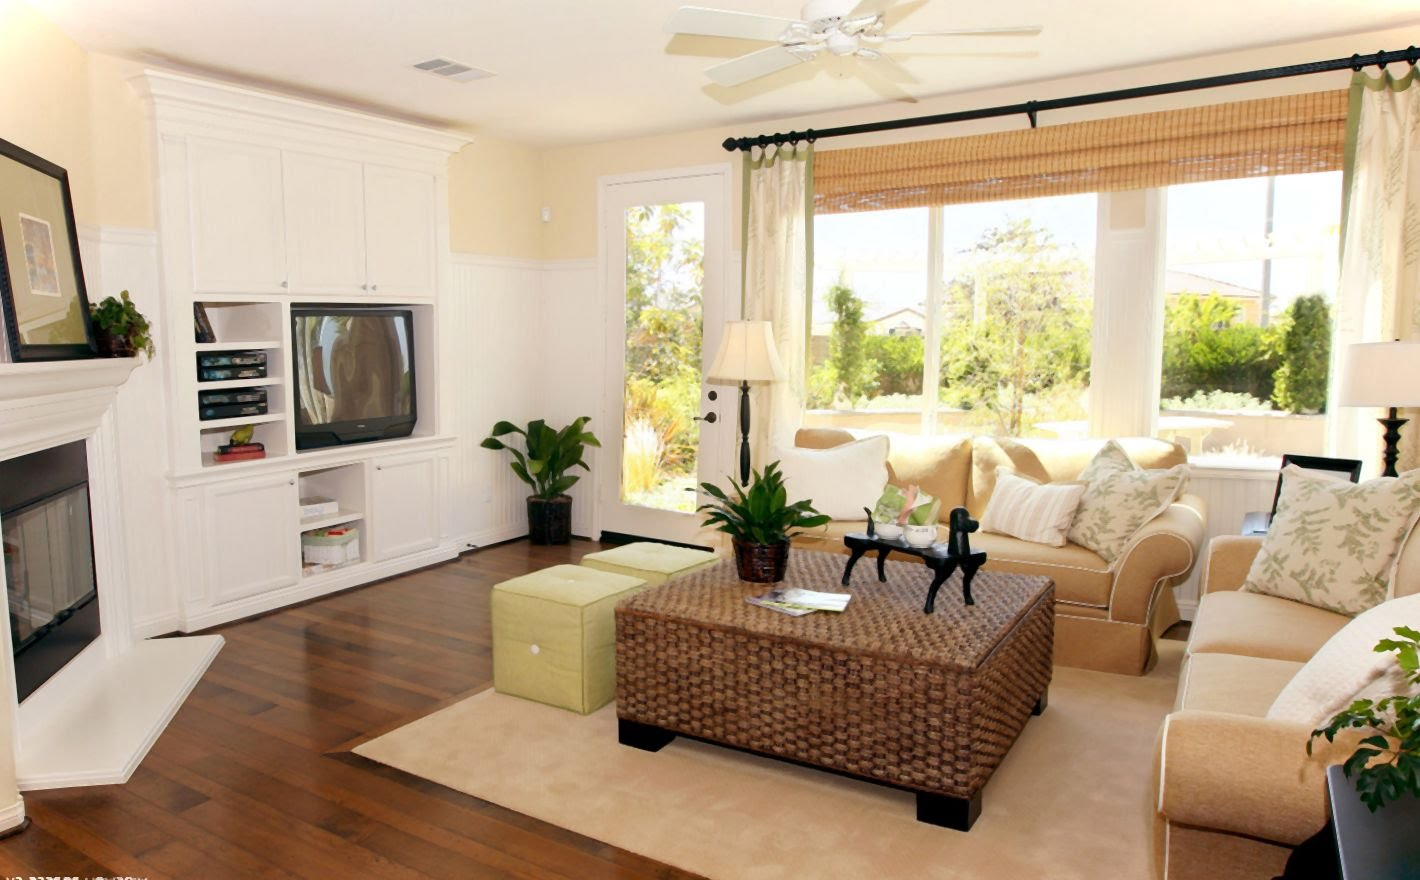 5 Great Home Decorating Tips